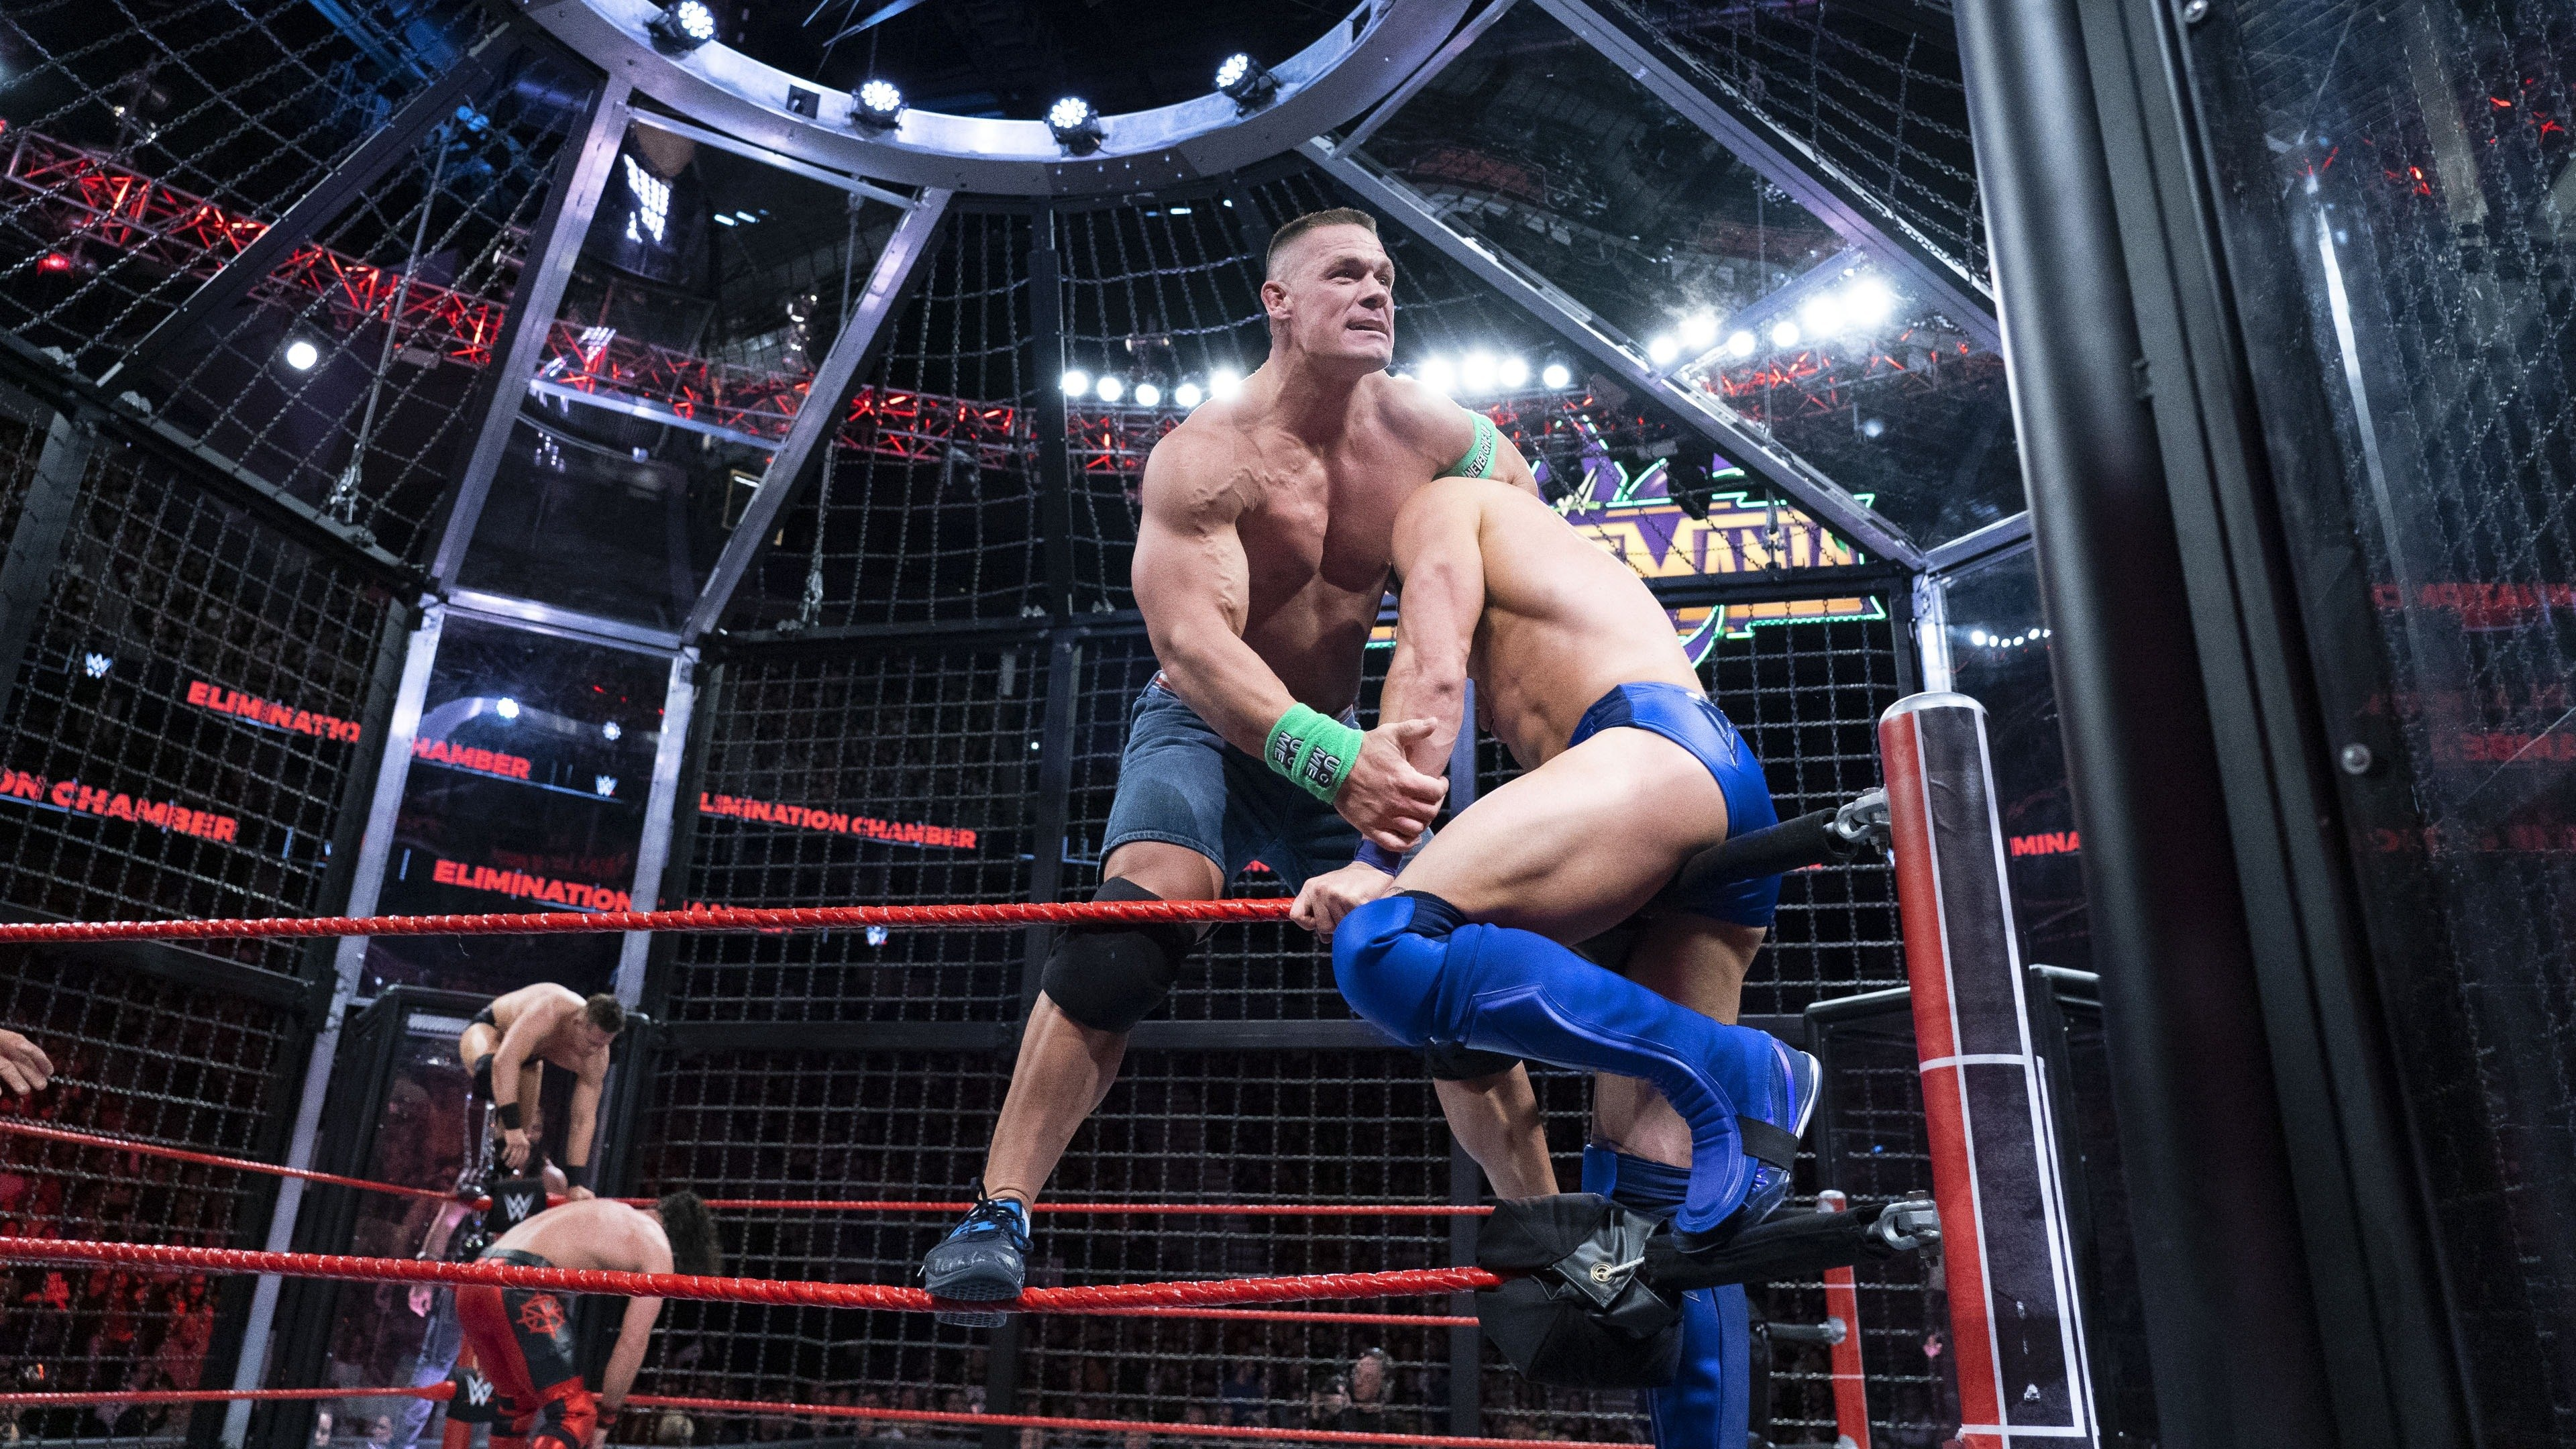 Watch Elimination Chamber Online   Peacock